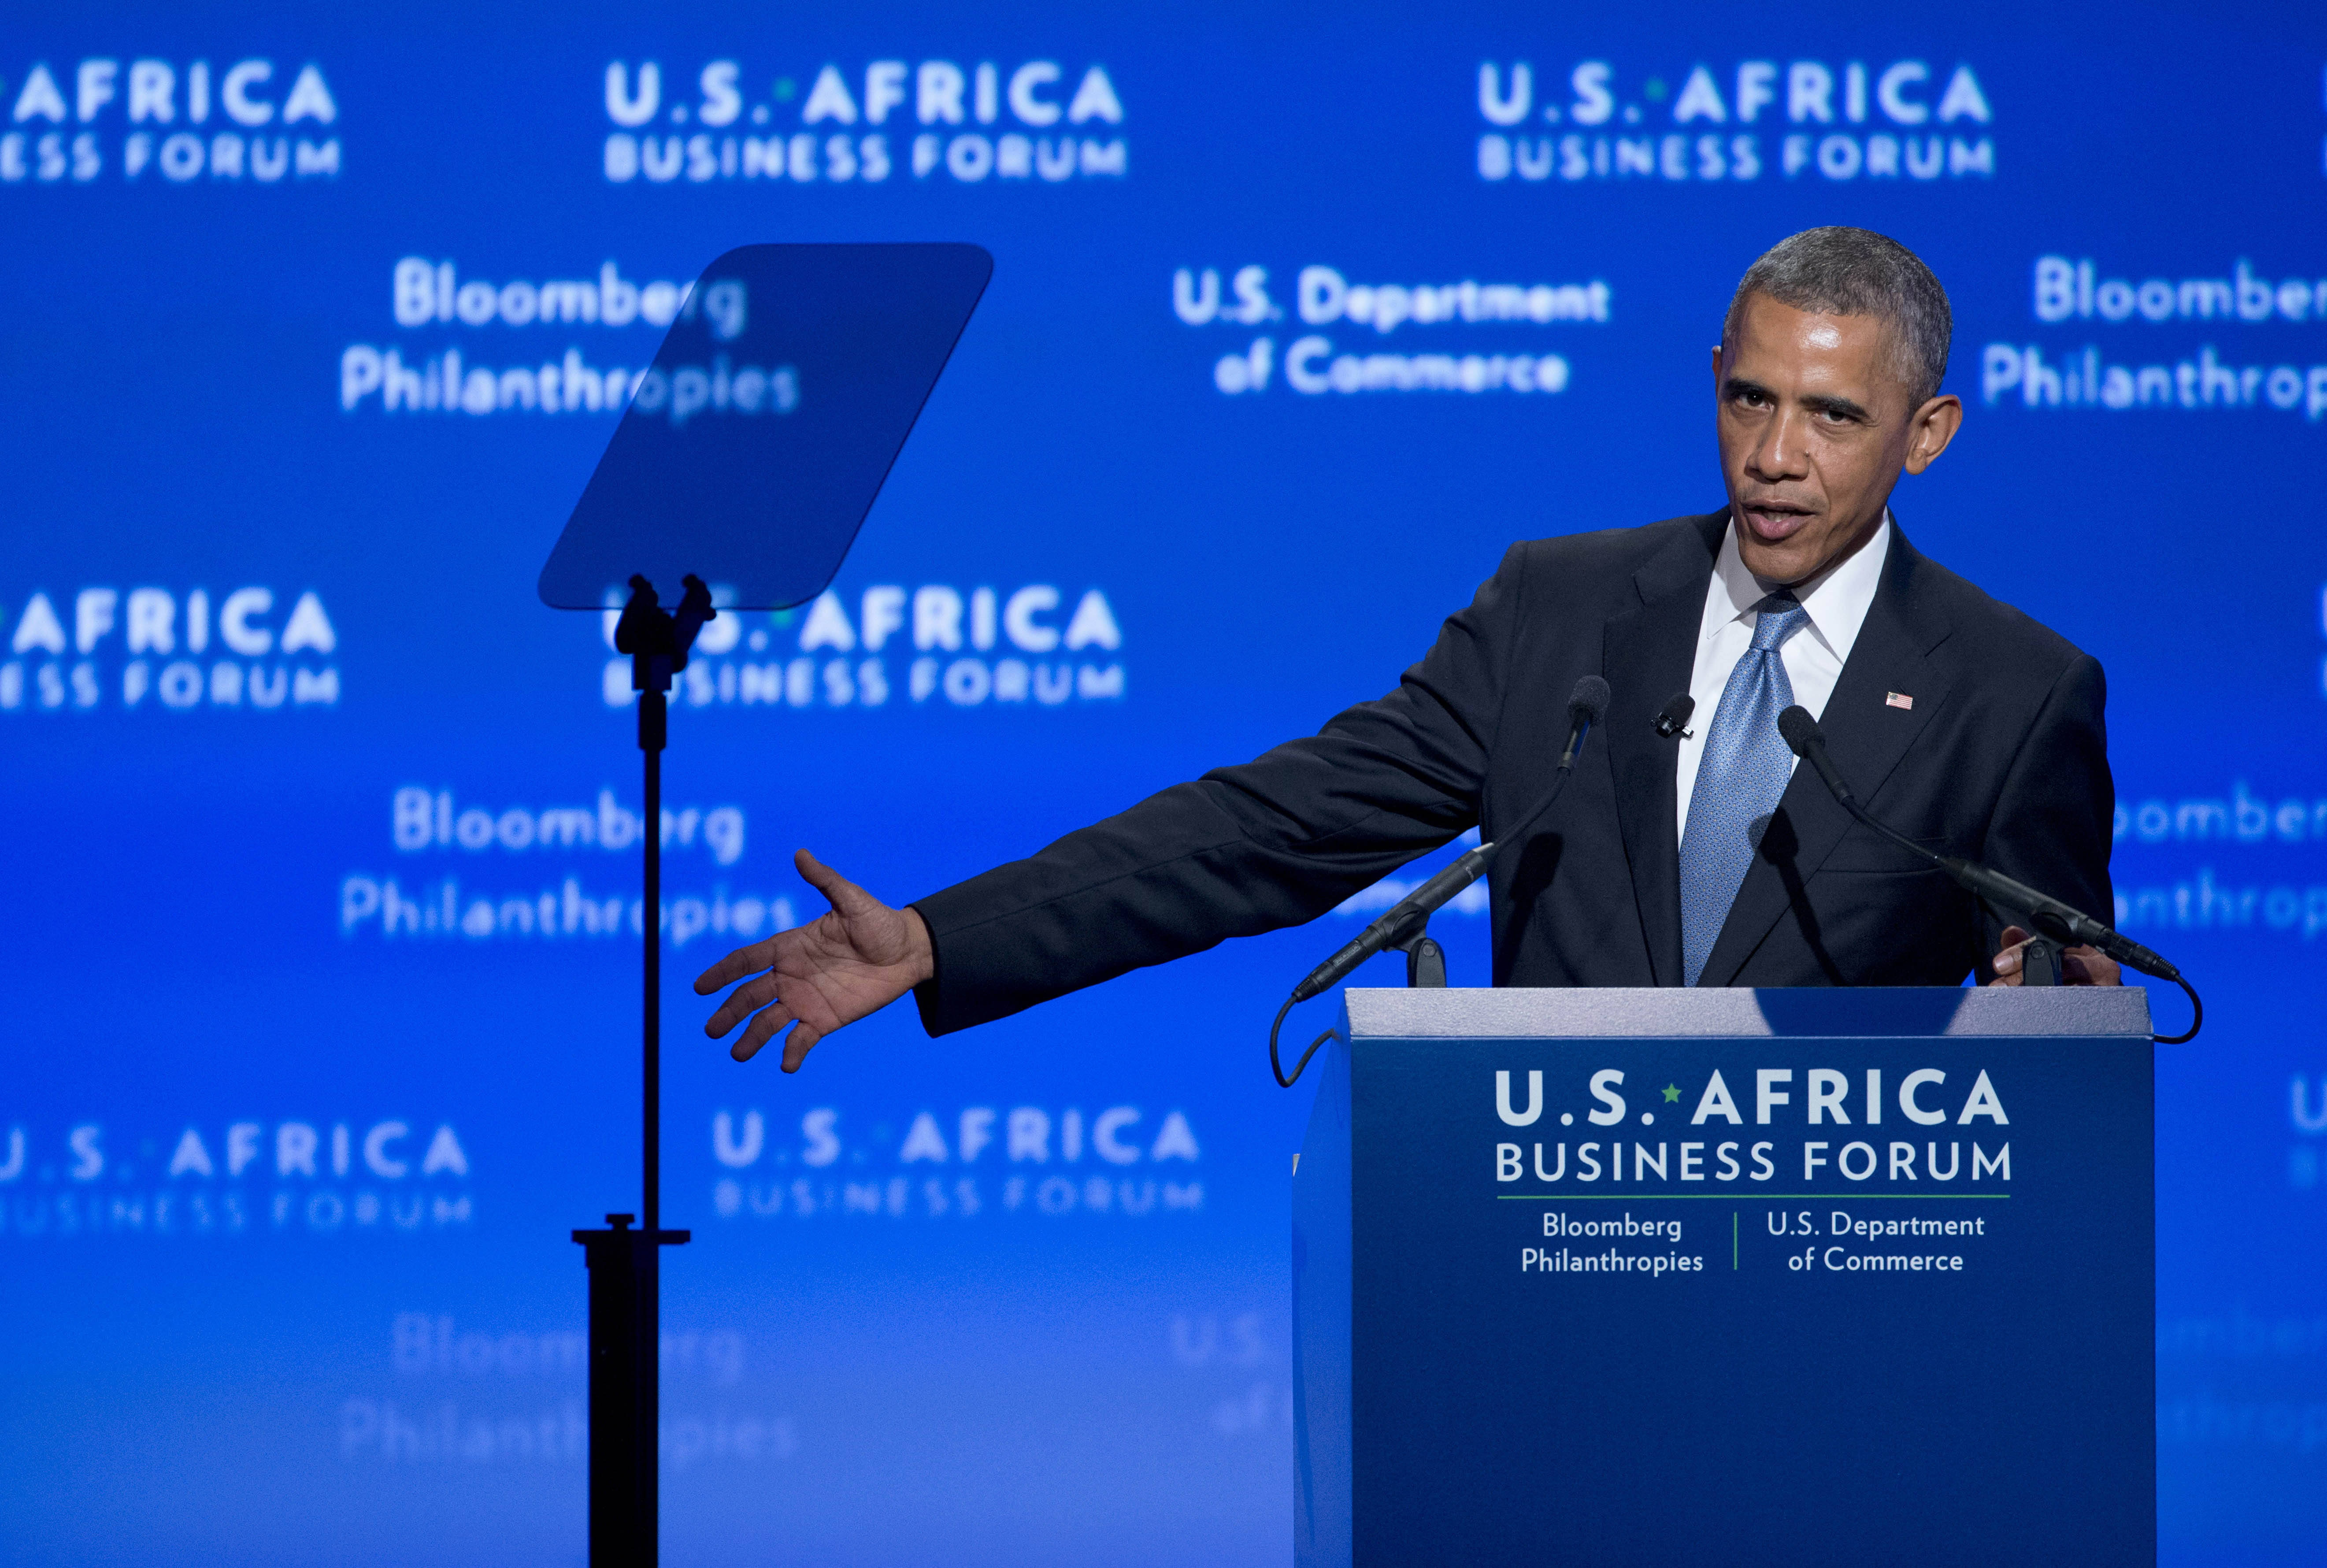 Let Sudan Not Be Forgotten: Letter to President Obama and African Leaders on the Occasion of the U.S.-Africa Summit